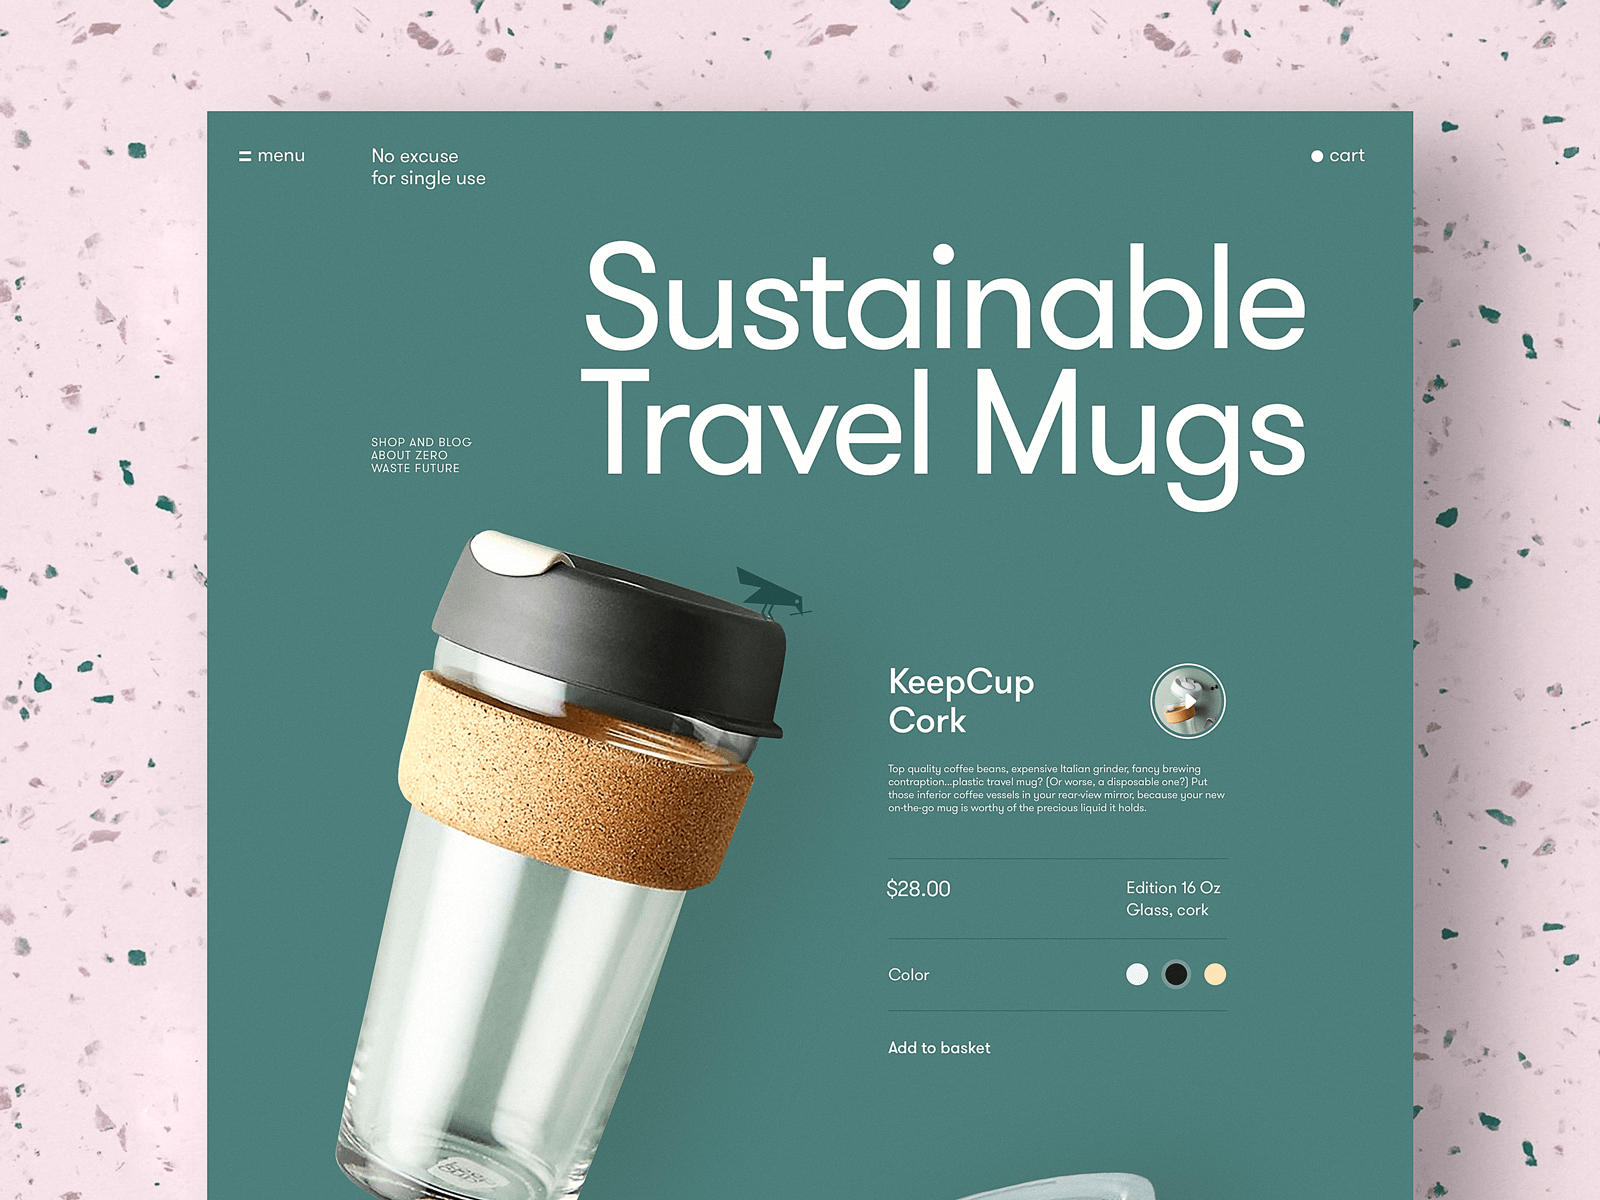 product page zero-waste website tubik design